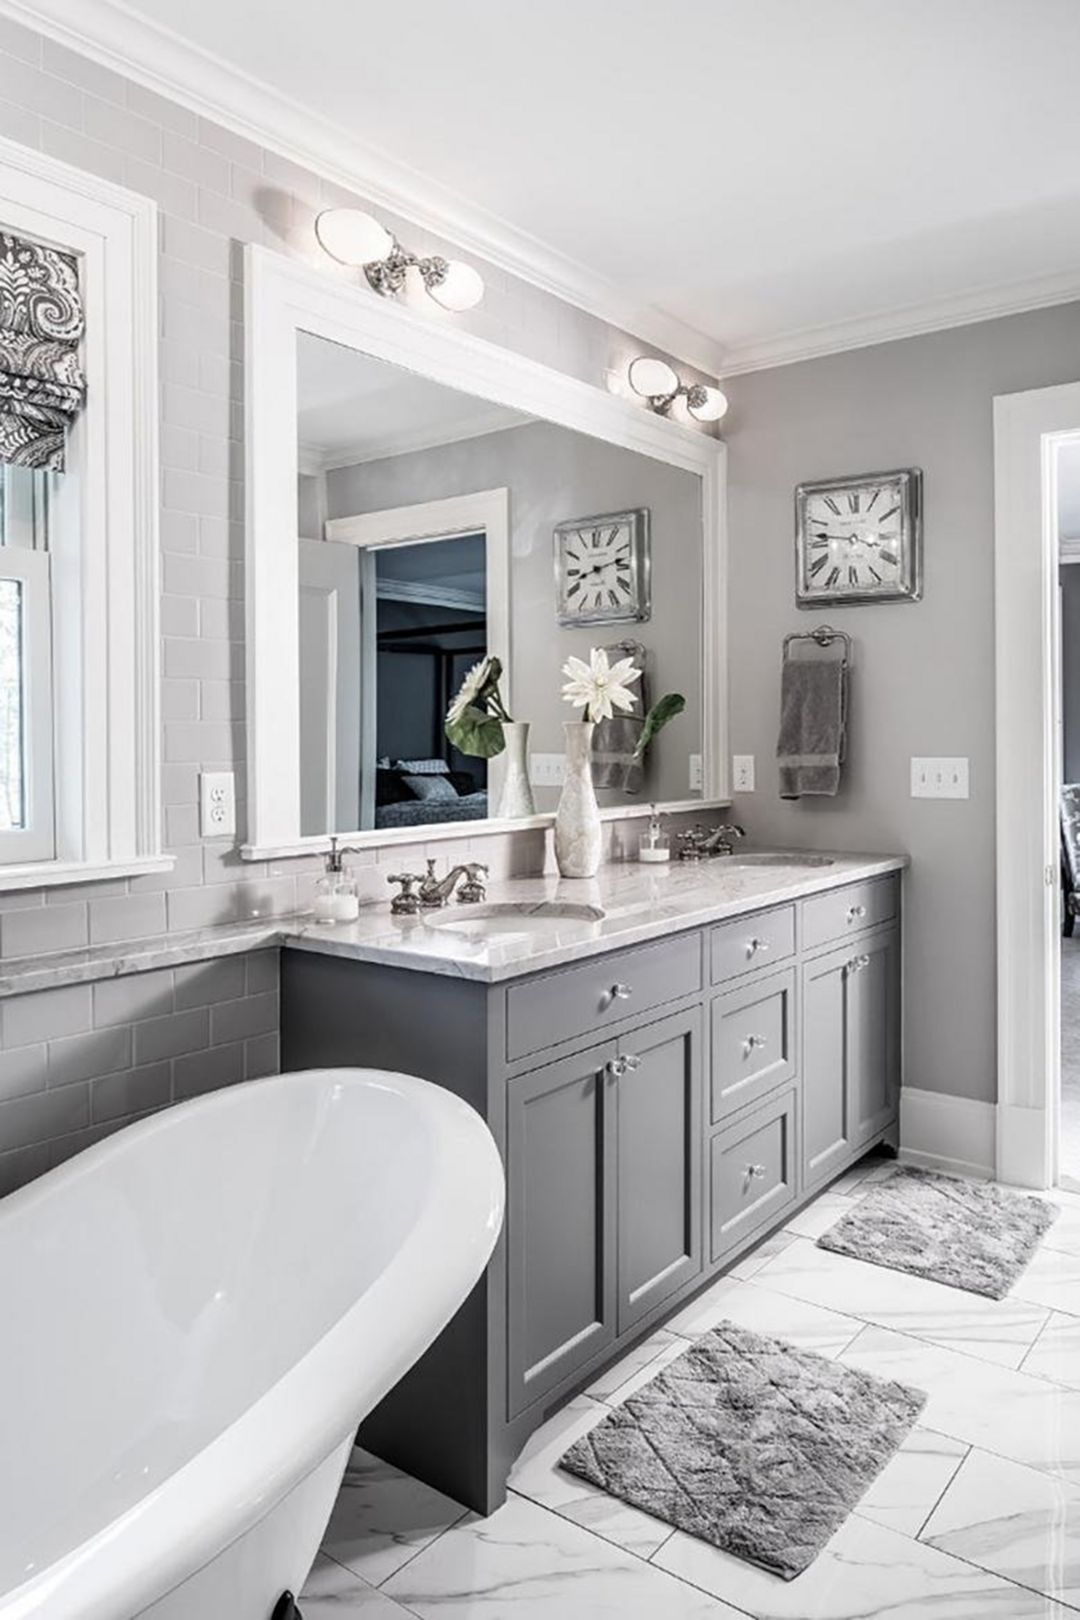 15 Incredible Gray And White Bathroom Ideas For Your New Bathrooms Inspiration Bathrooms Remodel Bathroom Inspiration Bathroom Design